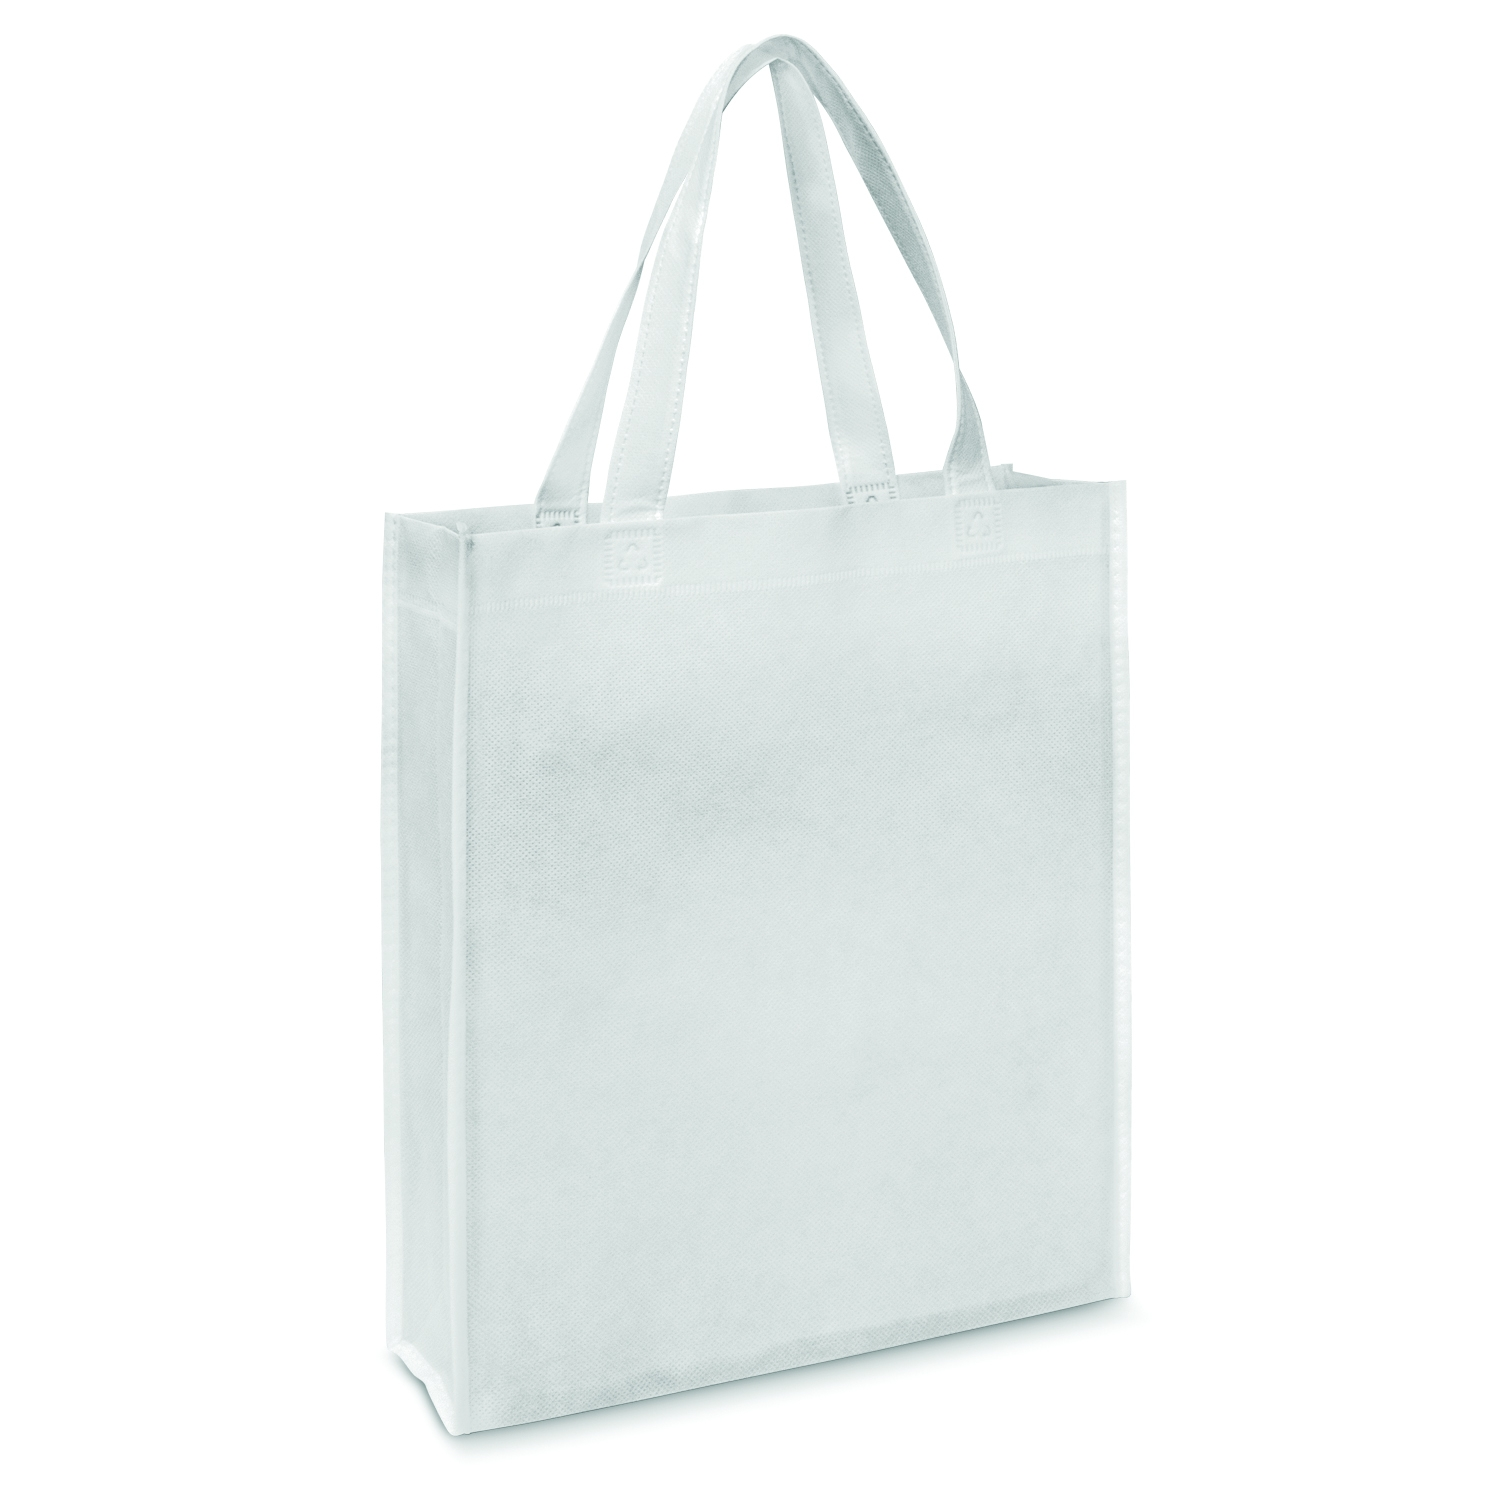 Kira Tote Bag - Laminated